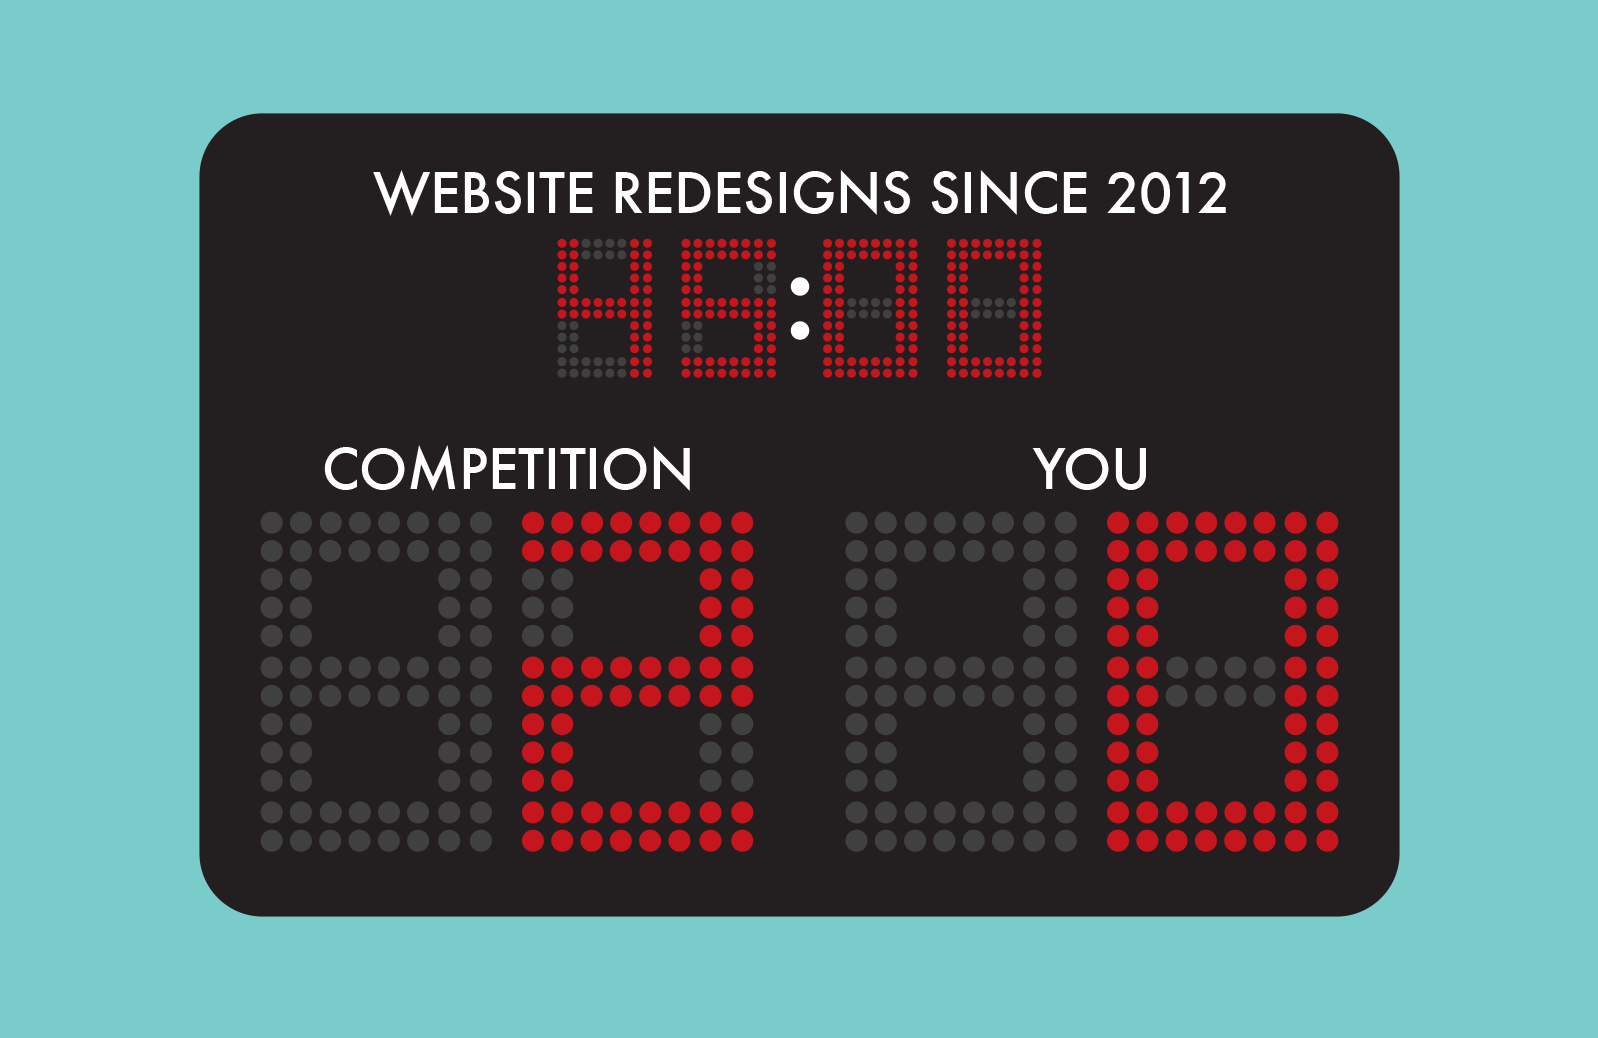 website redesigns keeping up with the competition